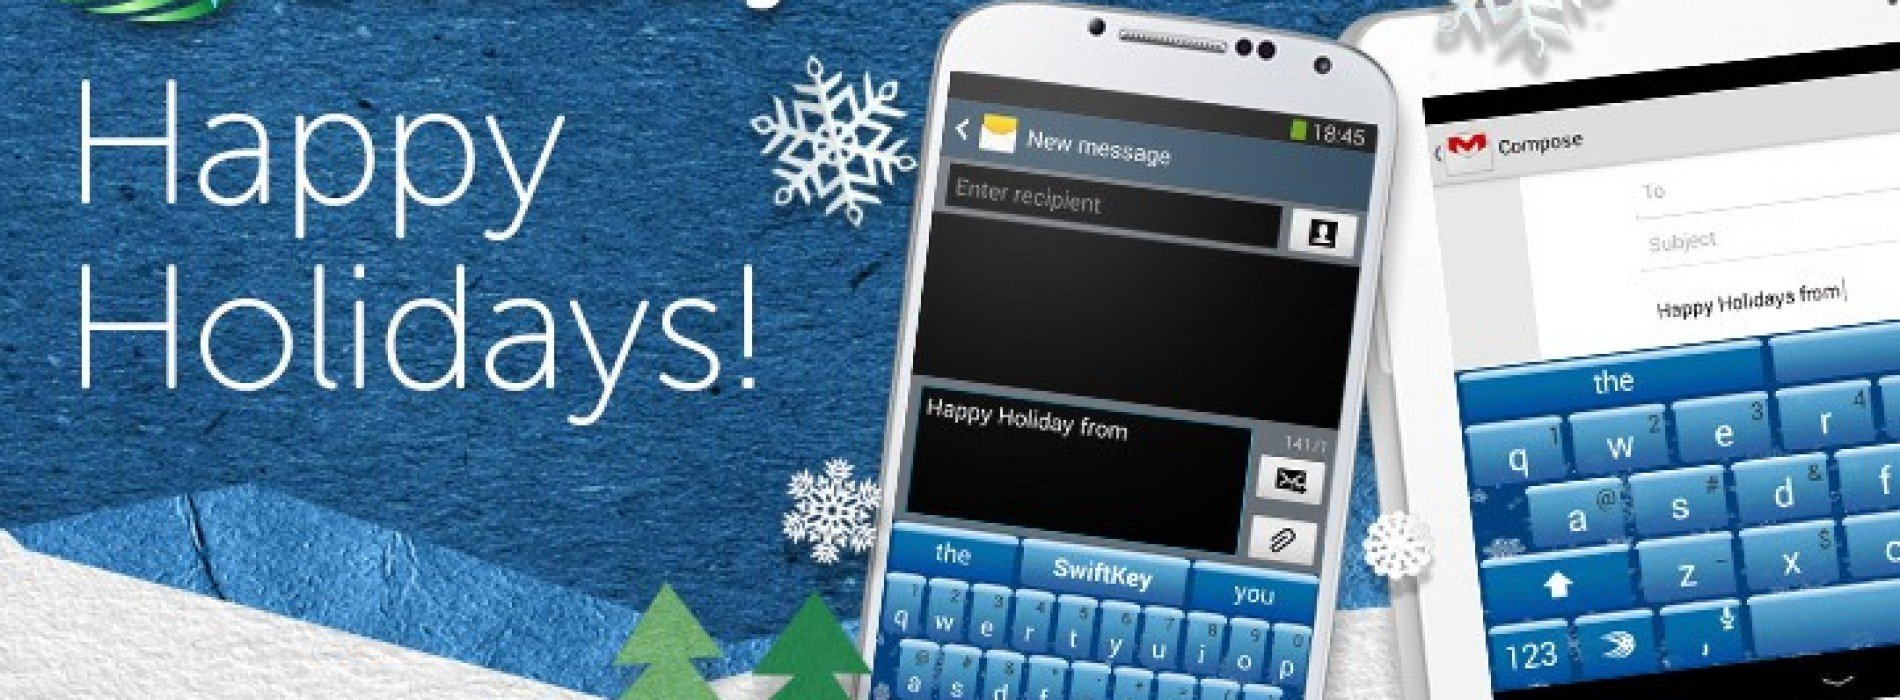 Swiftkey debuts Ice theme for keyboard